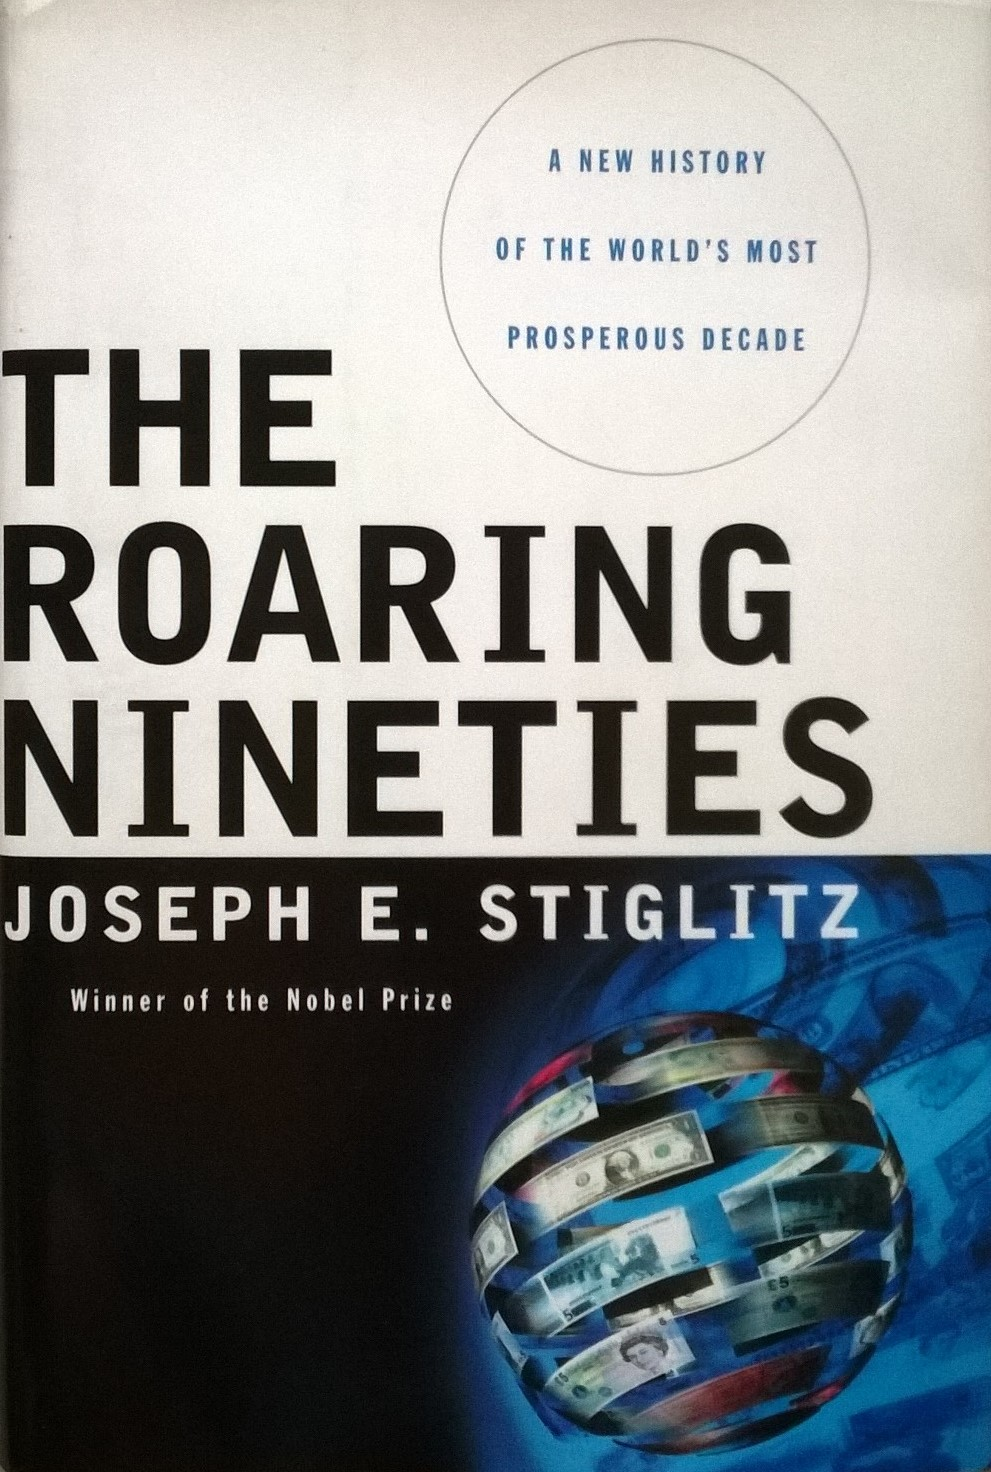 Stiglitz, Joseph E. The Roaring Nineties: A New History of the World's Most Prosperous Decade